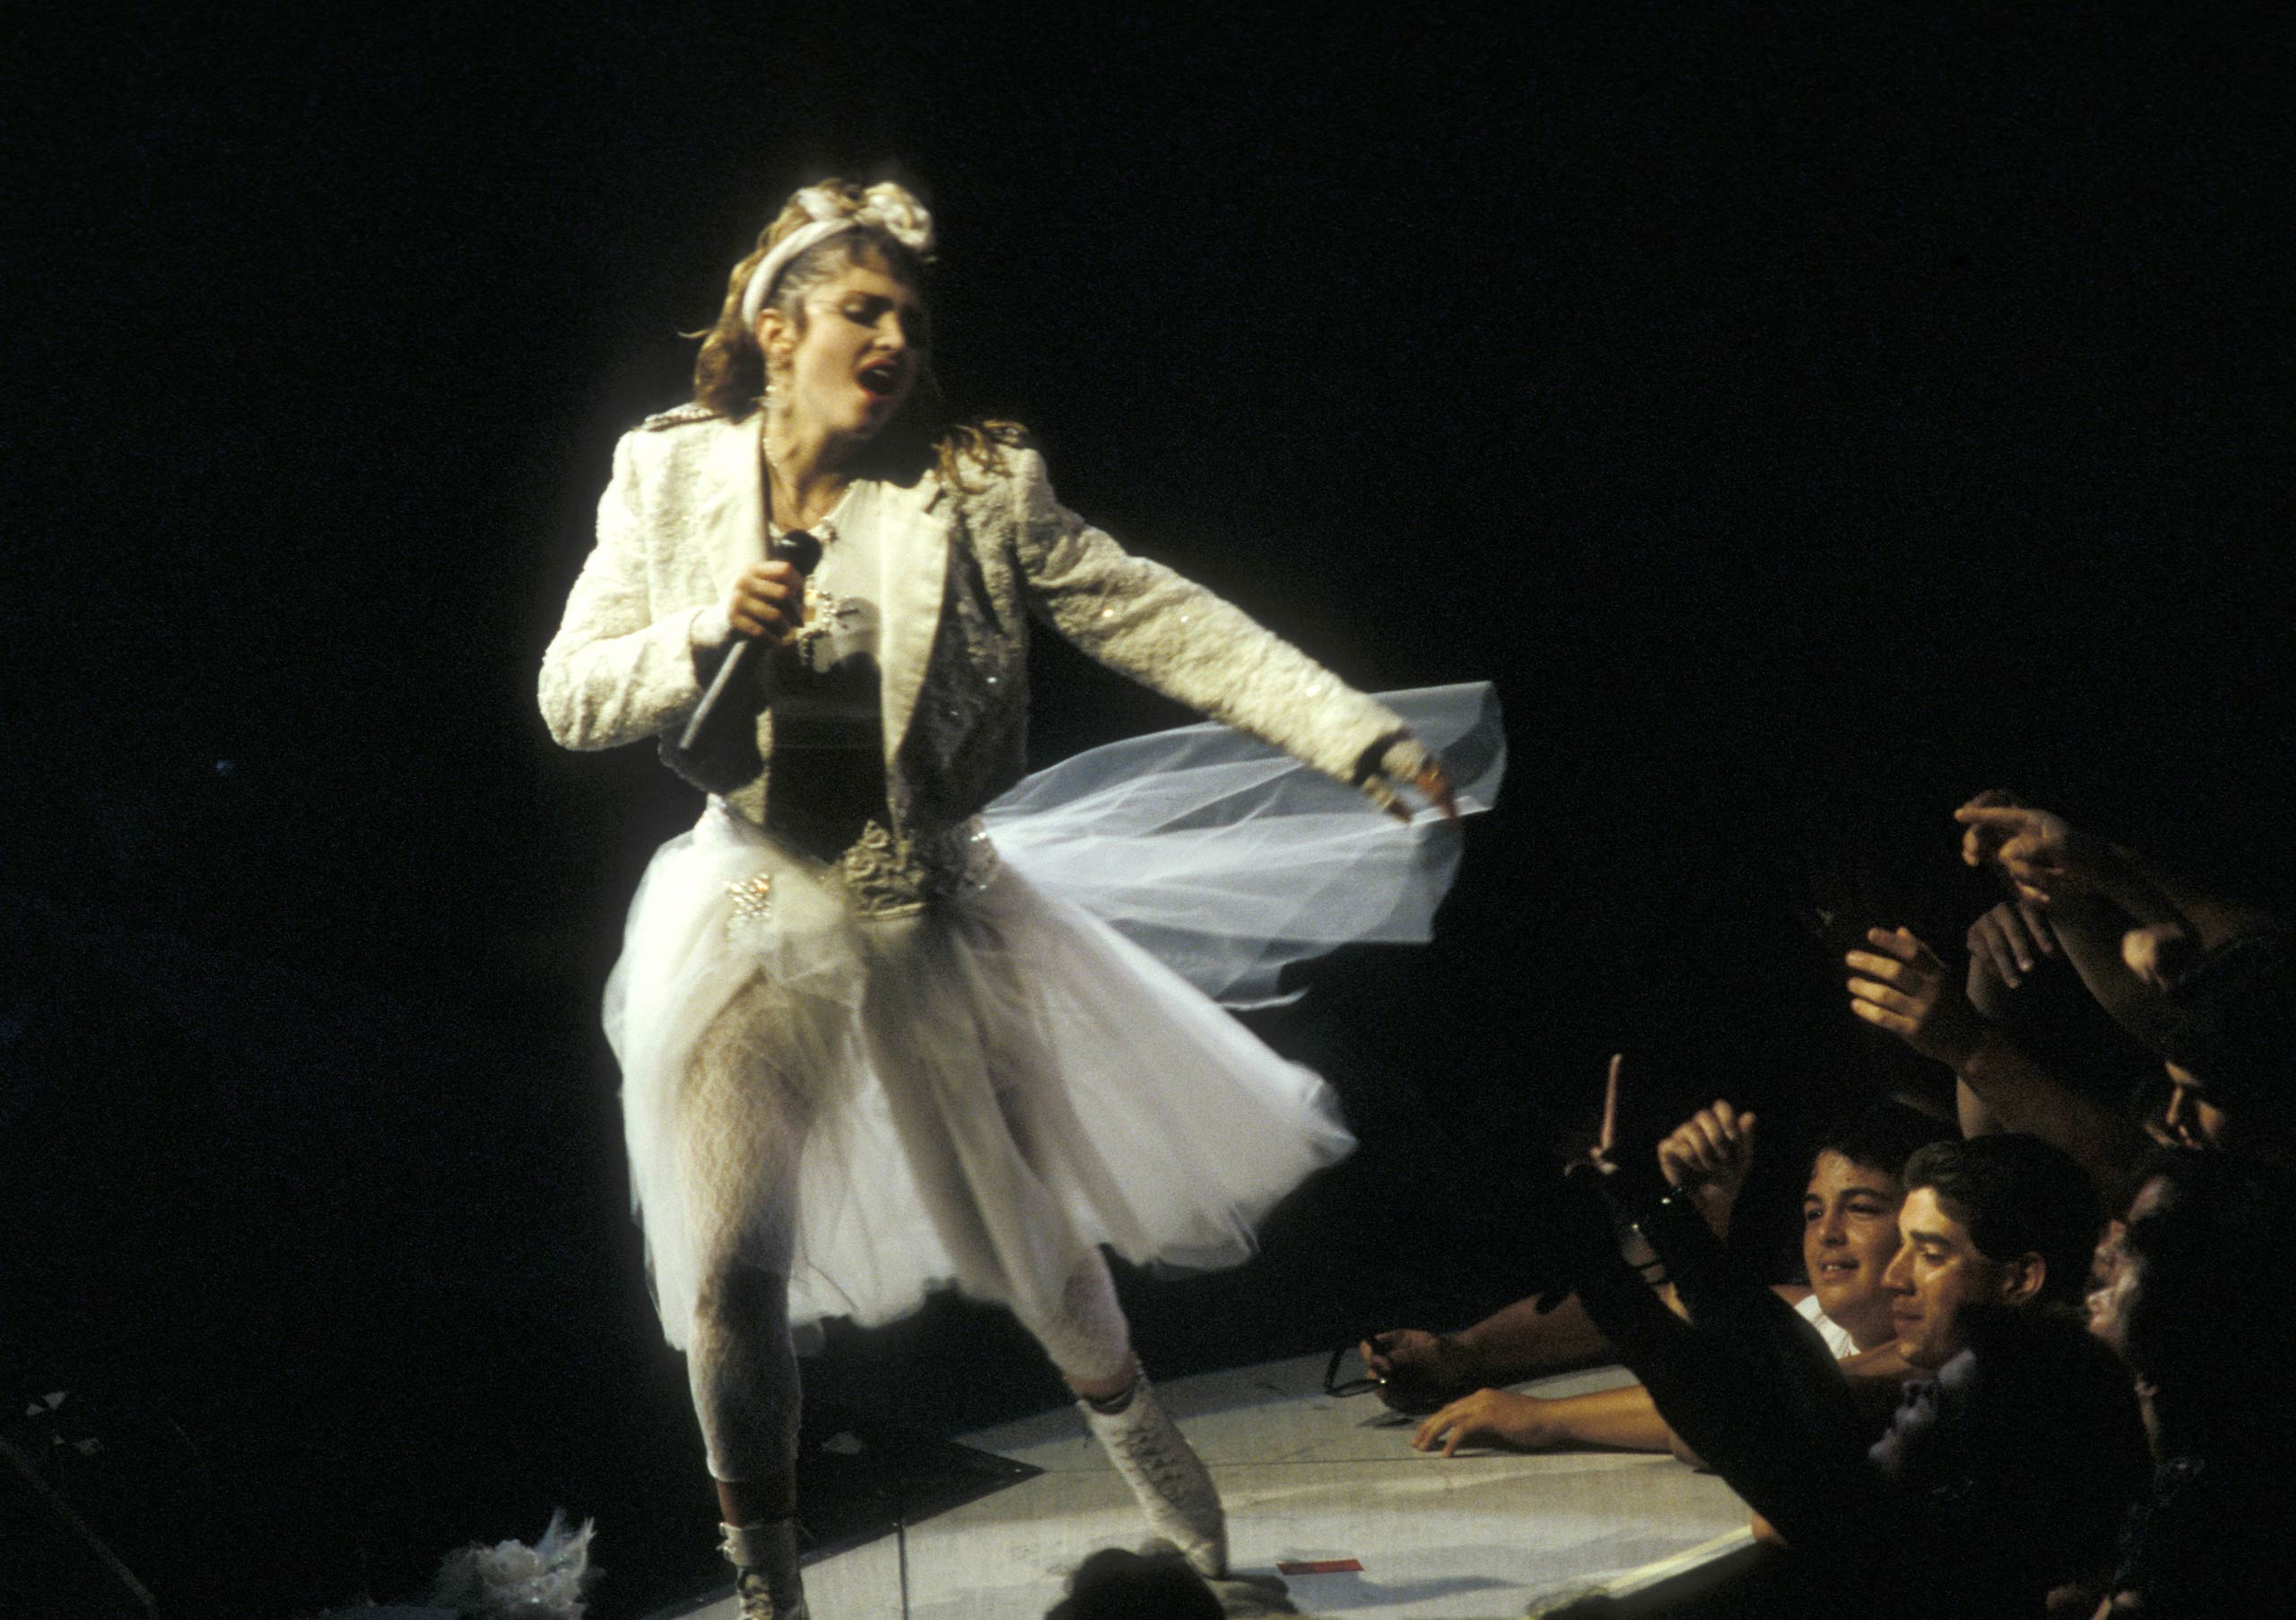 Madonna in concert in 1985.